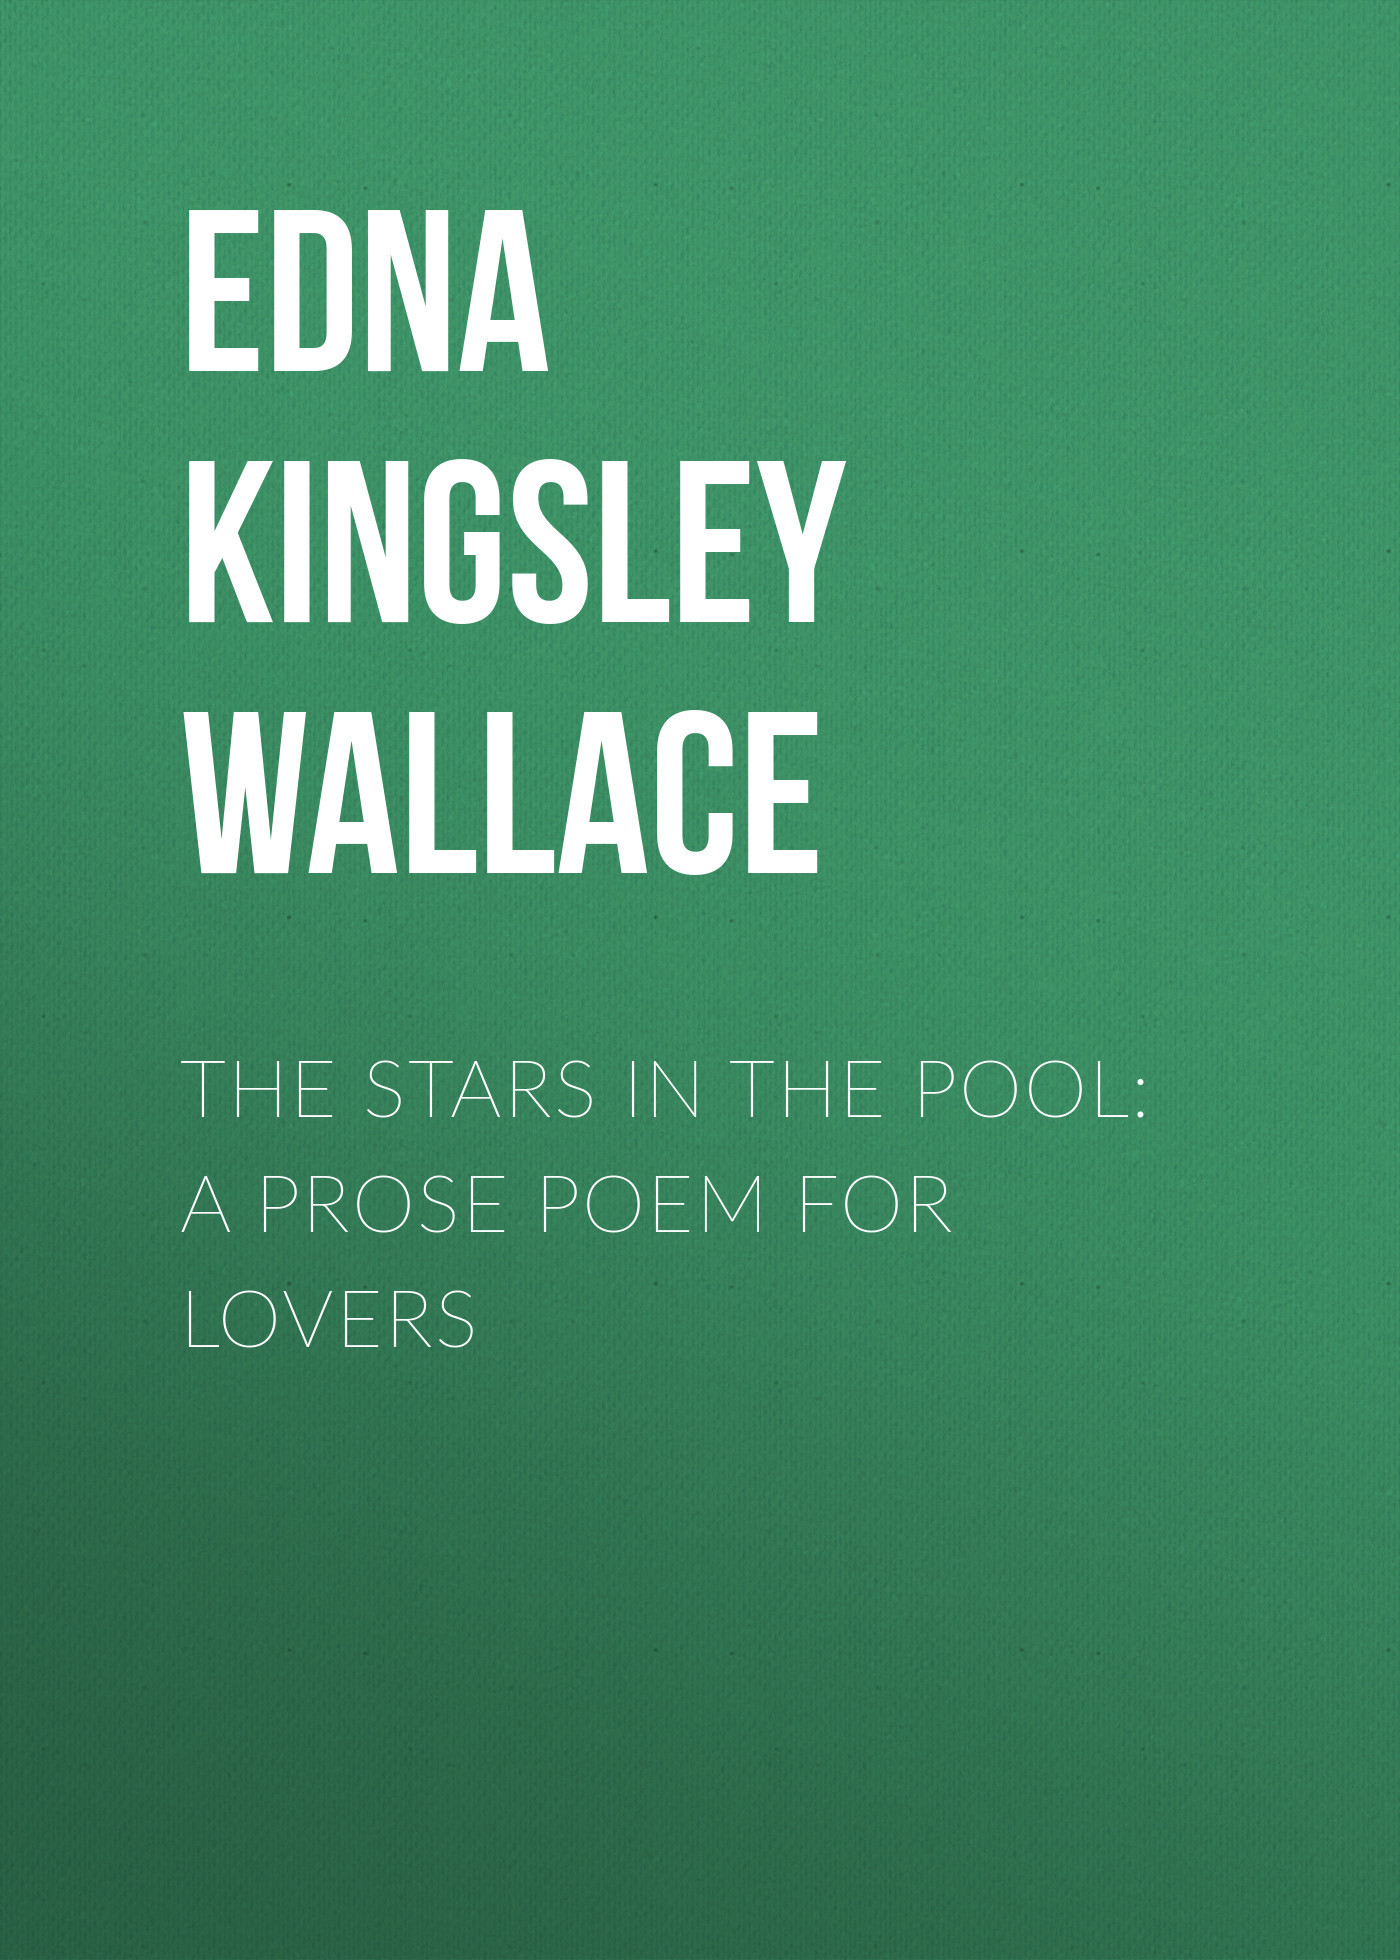 Edna Kingsley Wallace The Stars in the Pool: A Prose Poem for Lovers the complete prose